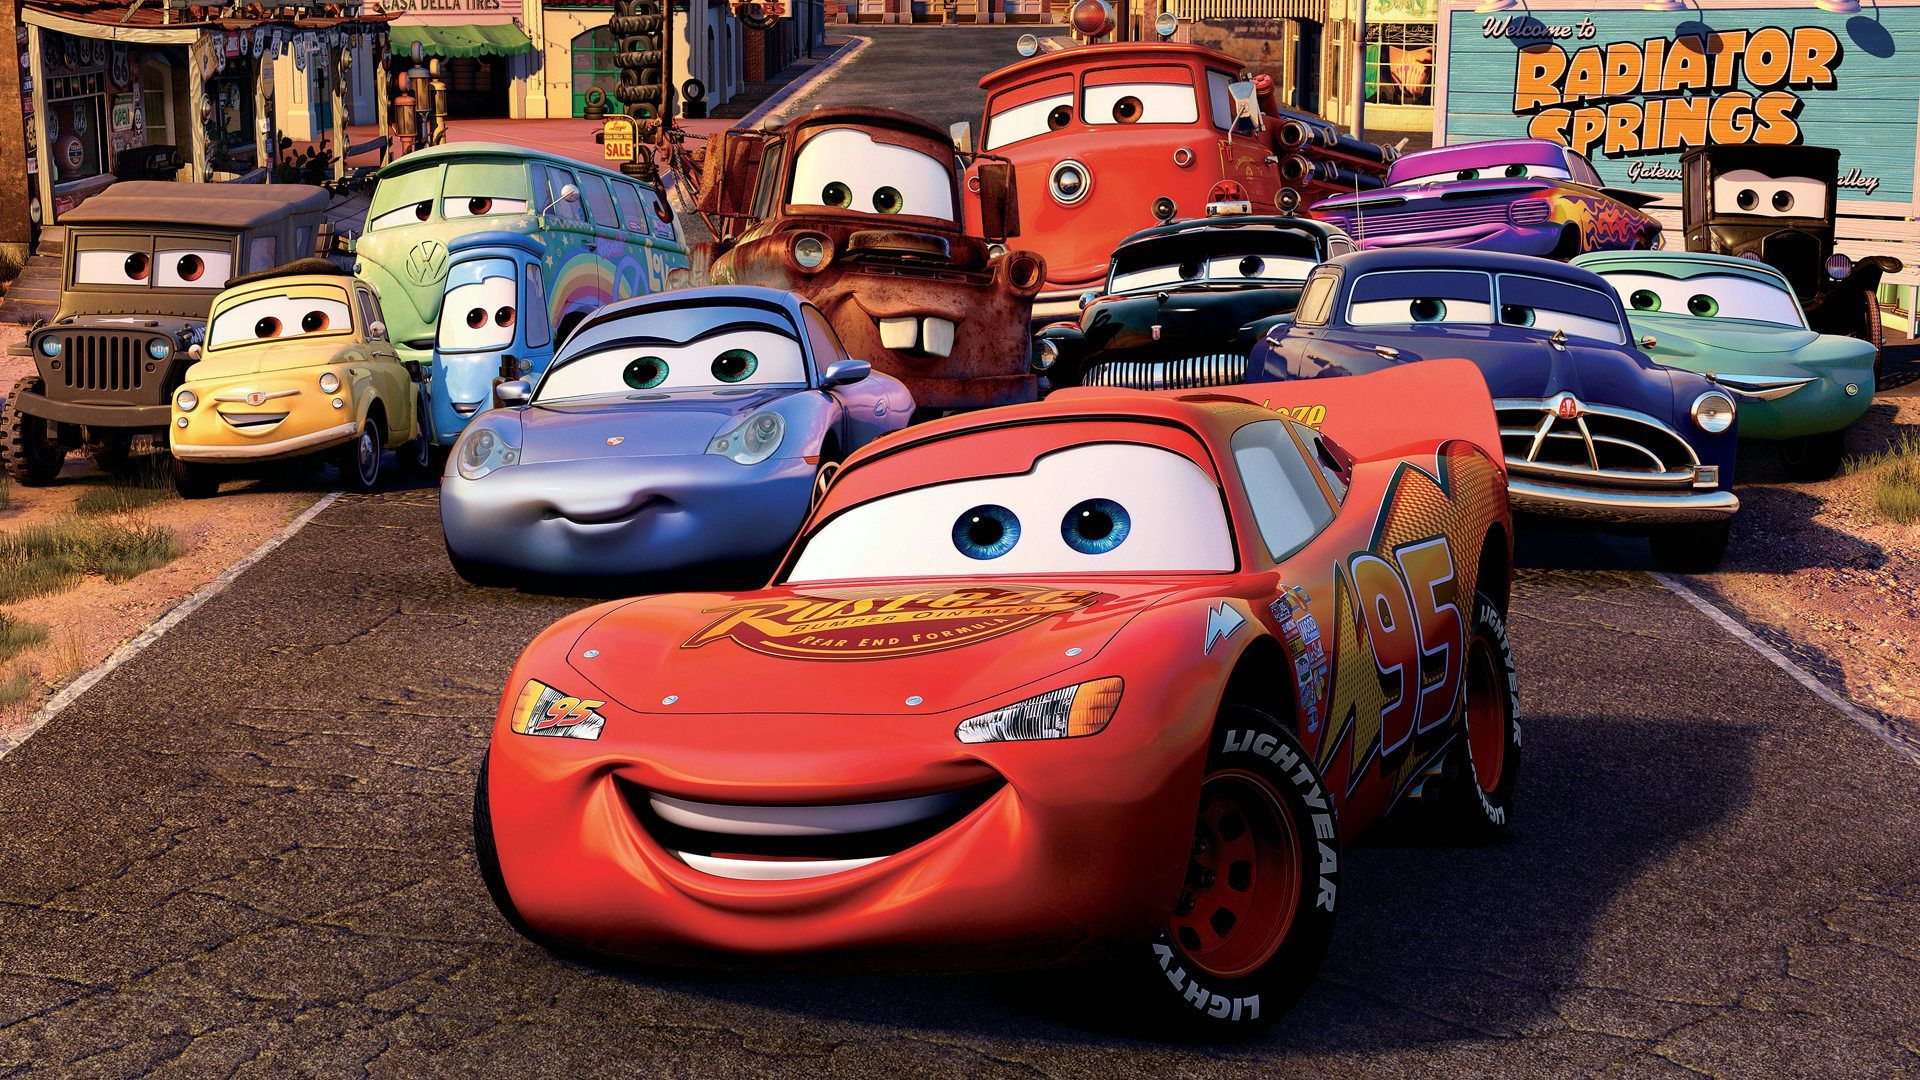 29+ Disney Cars Wallpaper Hd Wallpapers